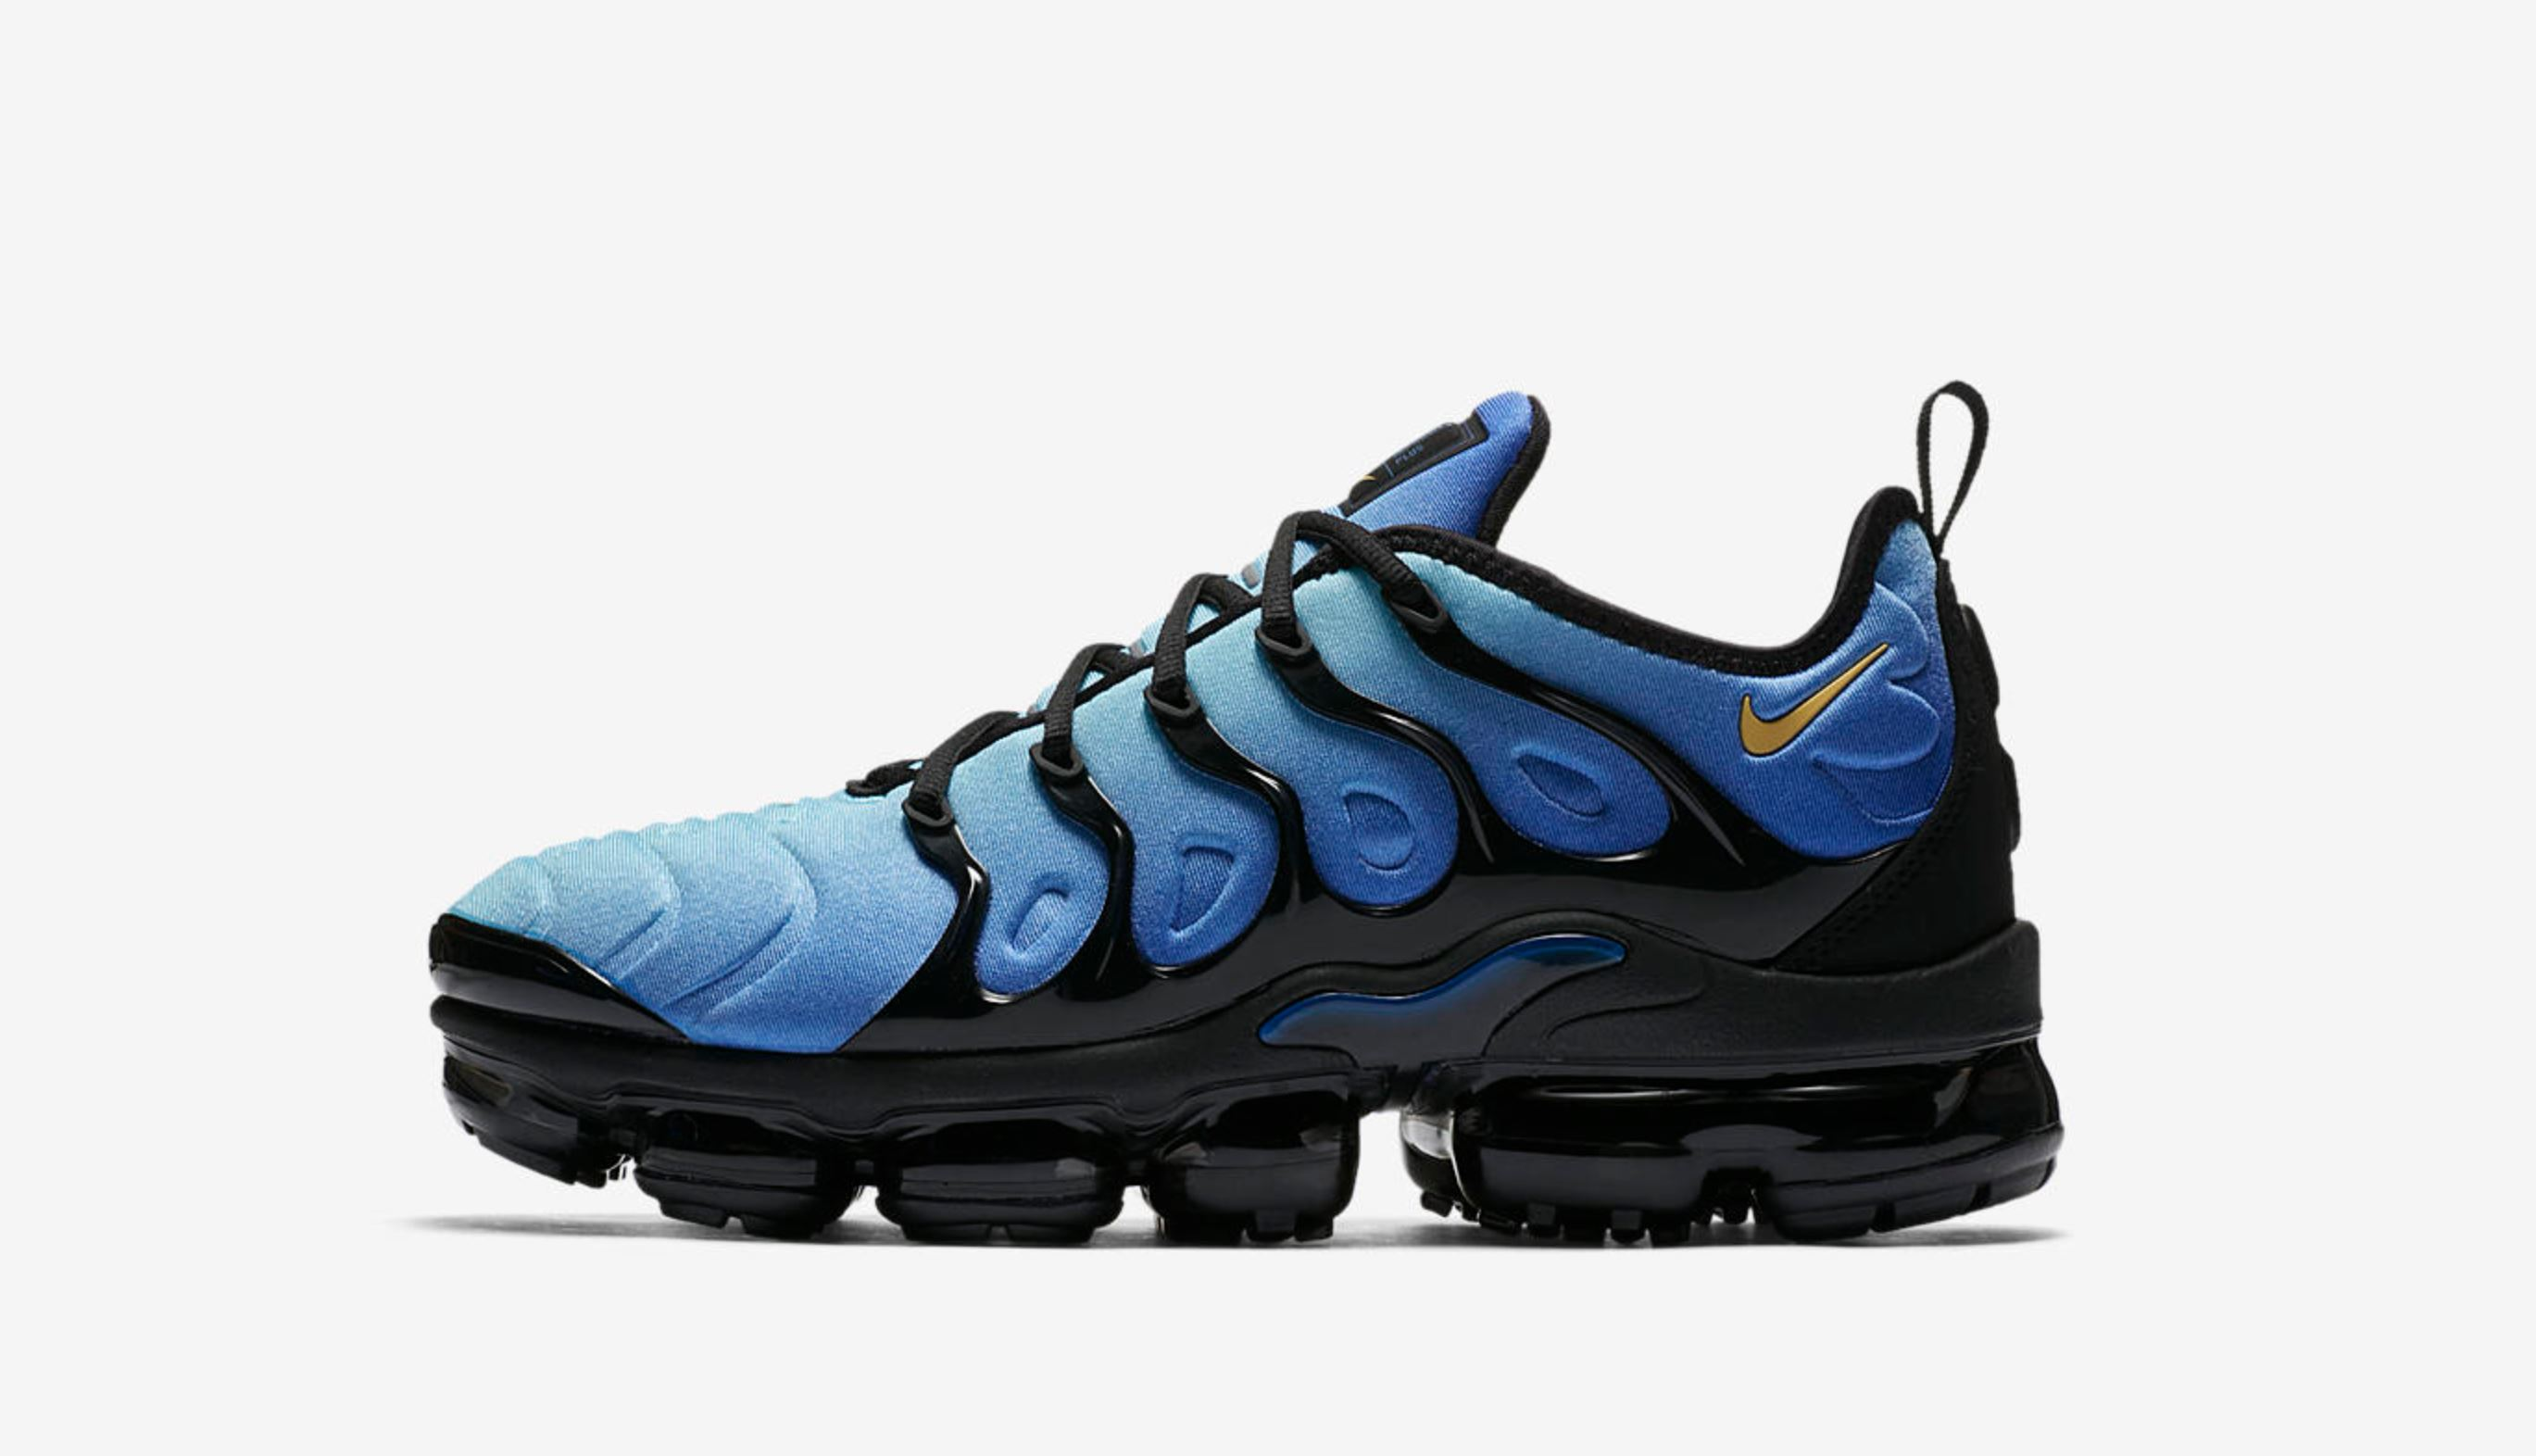 This Nike Air VaporMax Plus Honors the Original Tuned Air